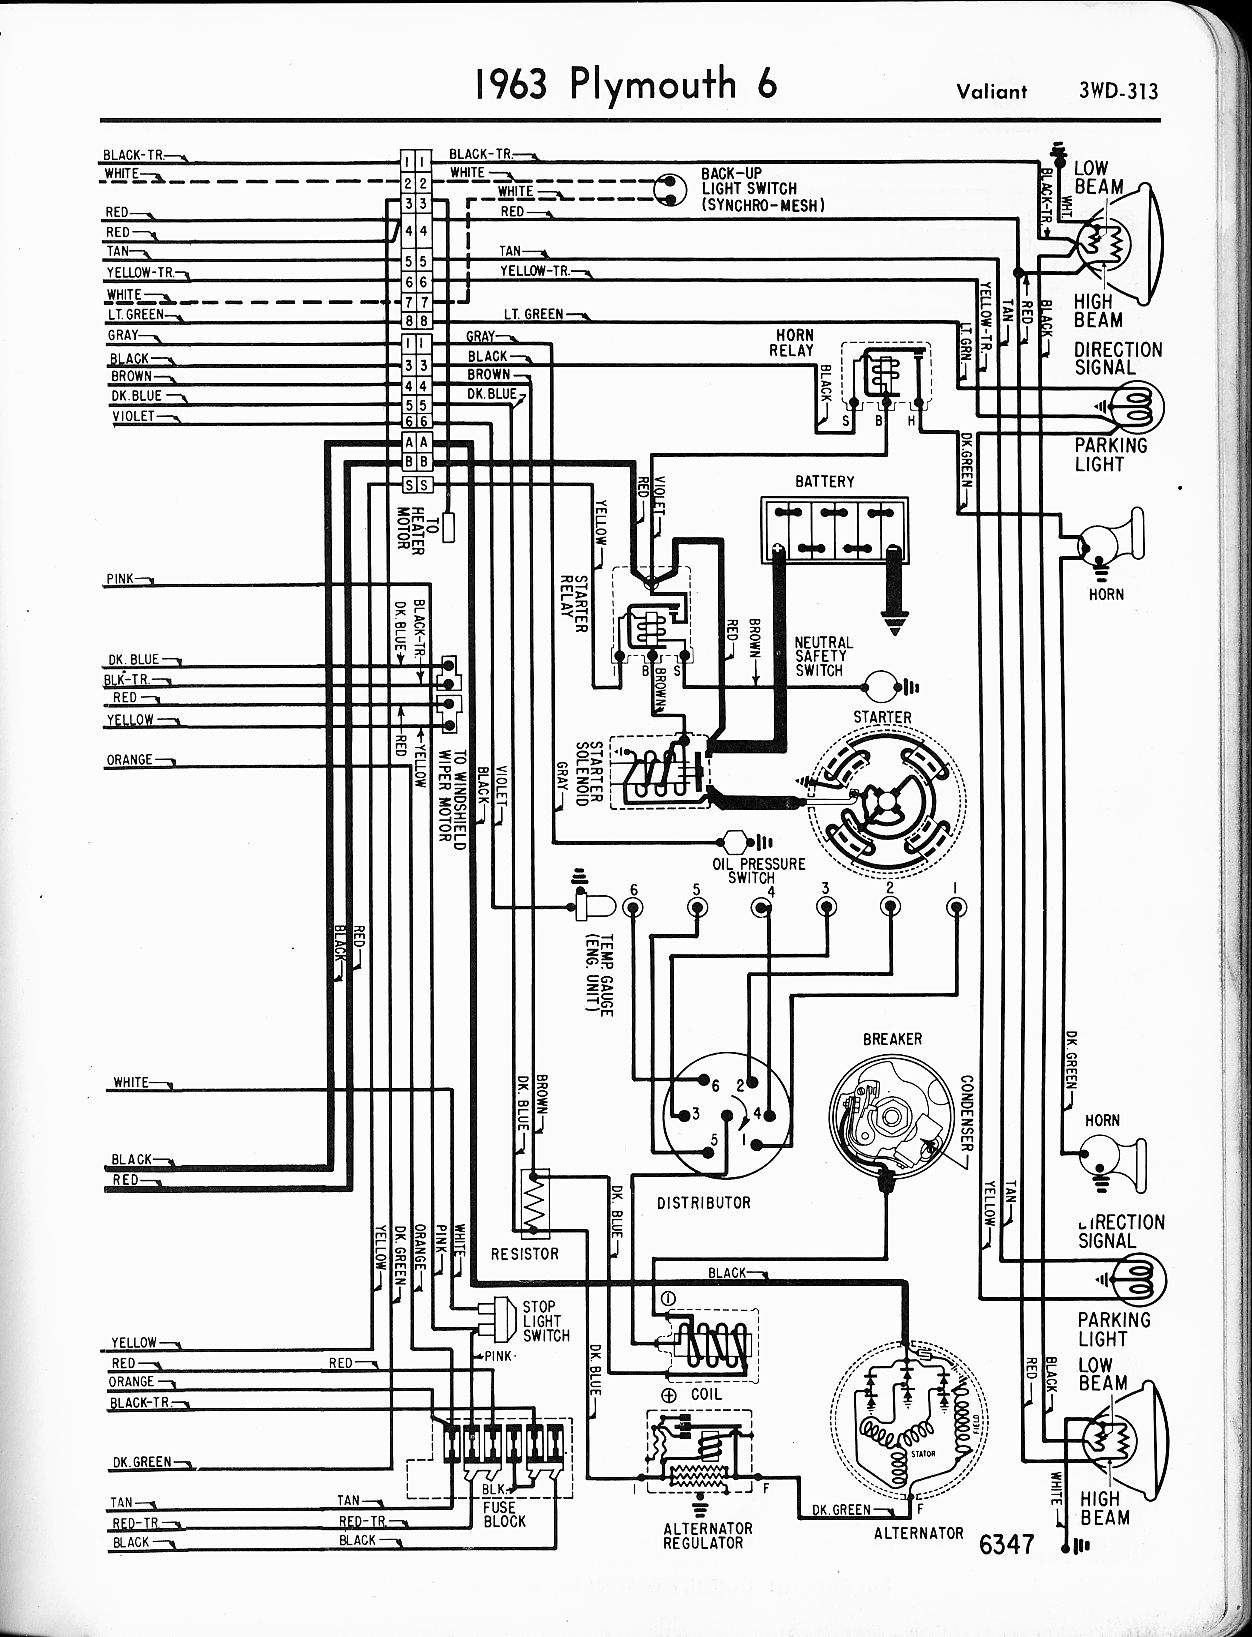 [WRG-3714] 69 Plymouth Roadrunner Wiring Diagram